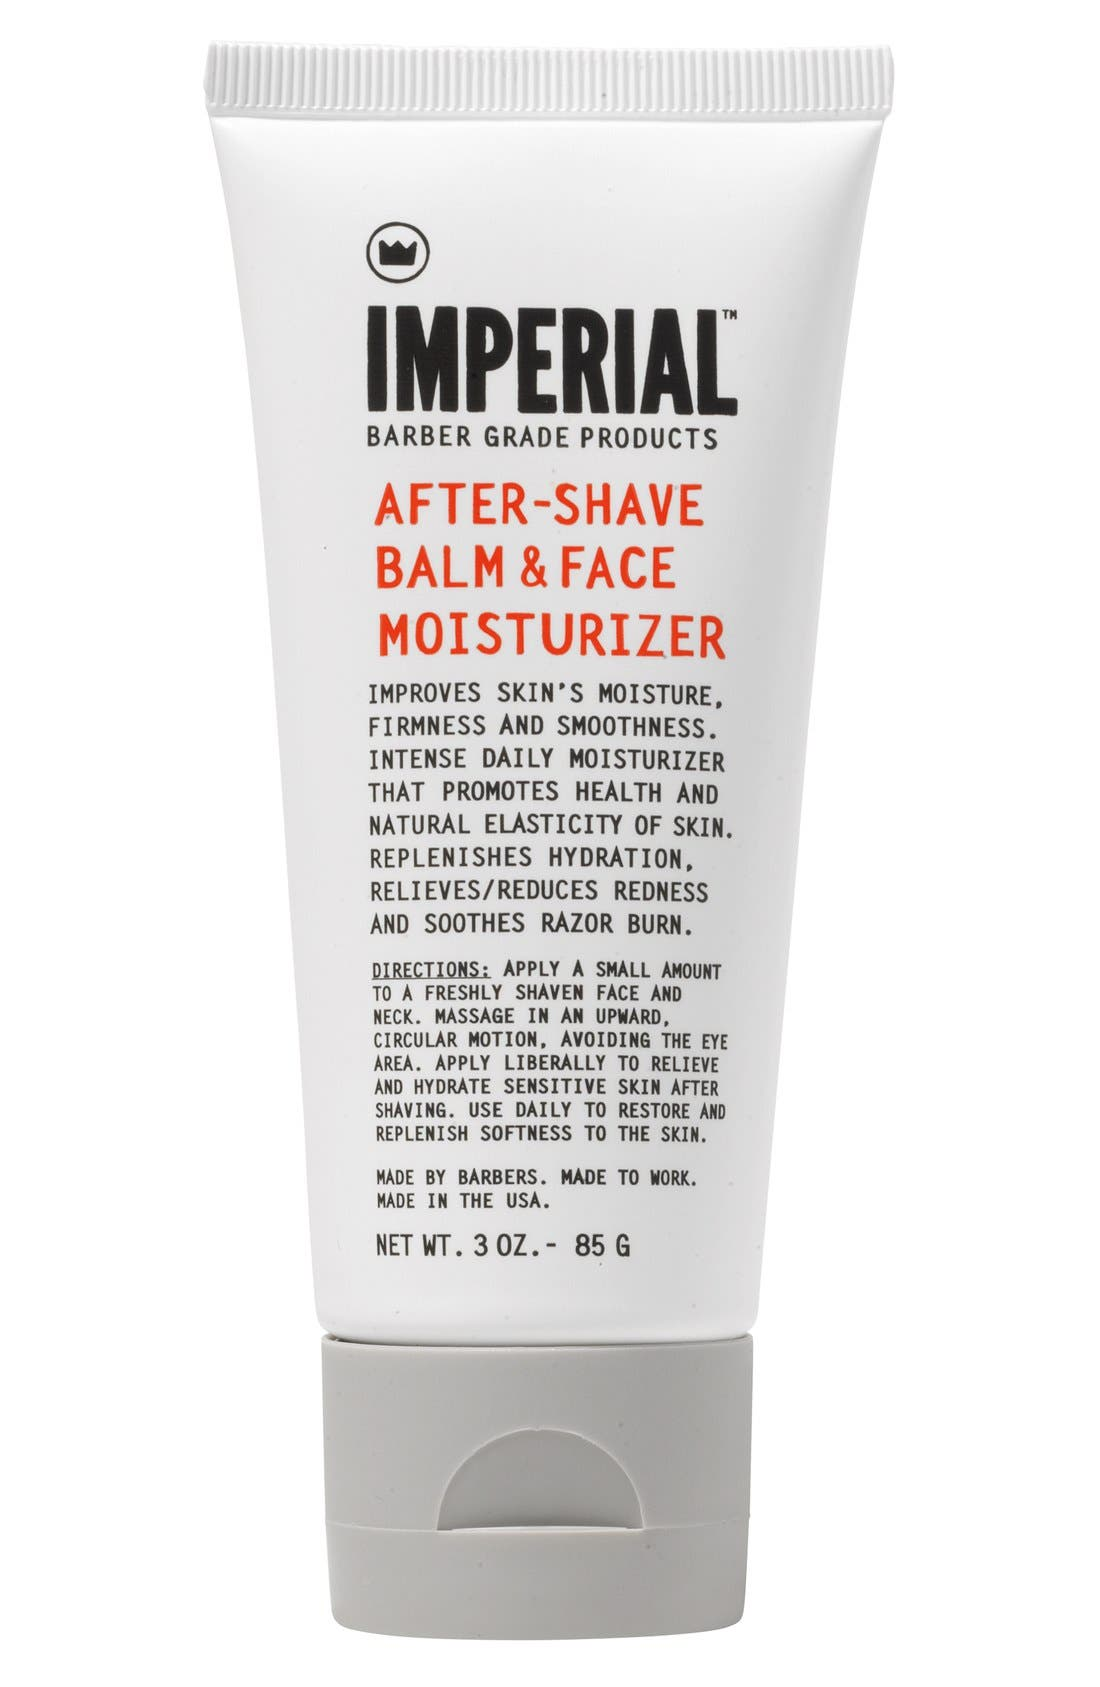 Imperial Barber Grade Products™ After-Shave Balm & Face Moisturizer